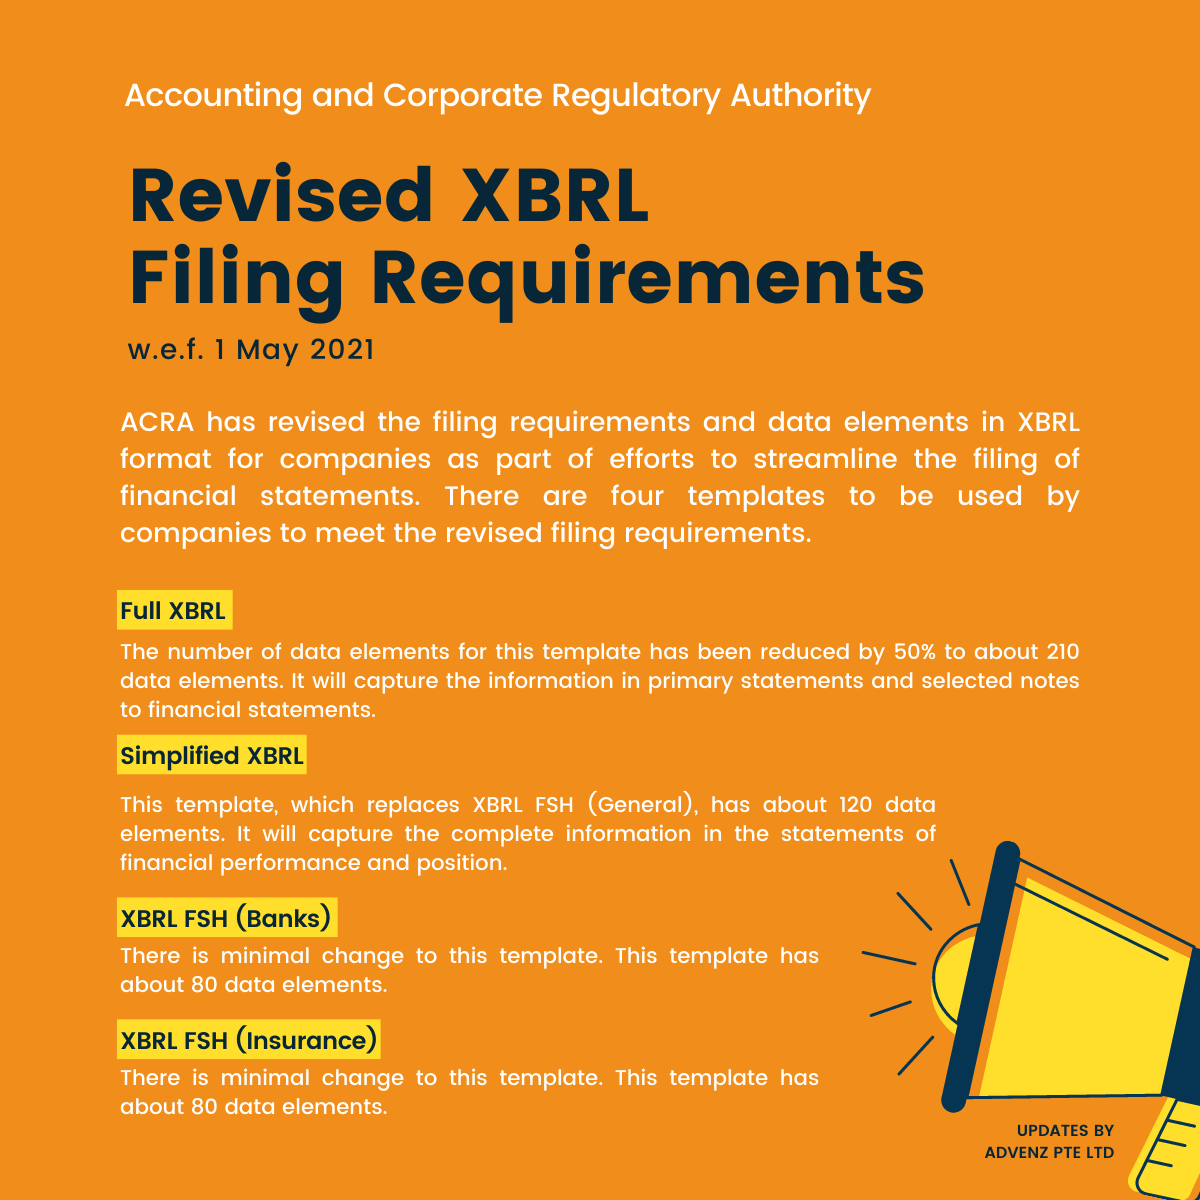 ACRA_Revised XBRL Filing Requirements